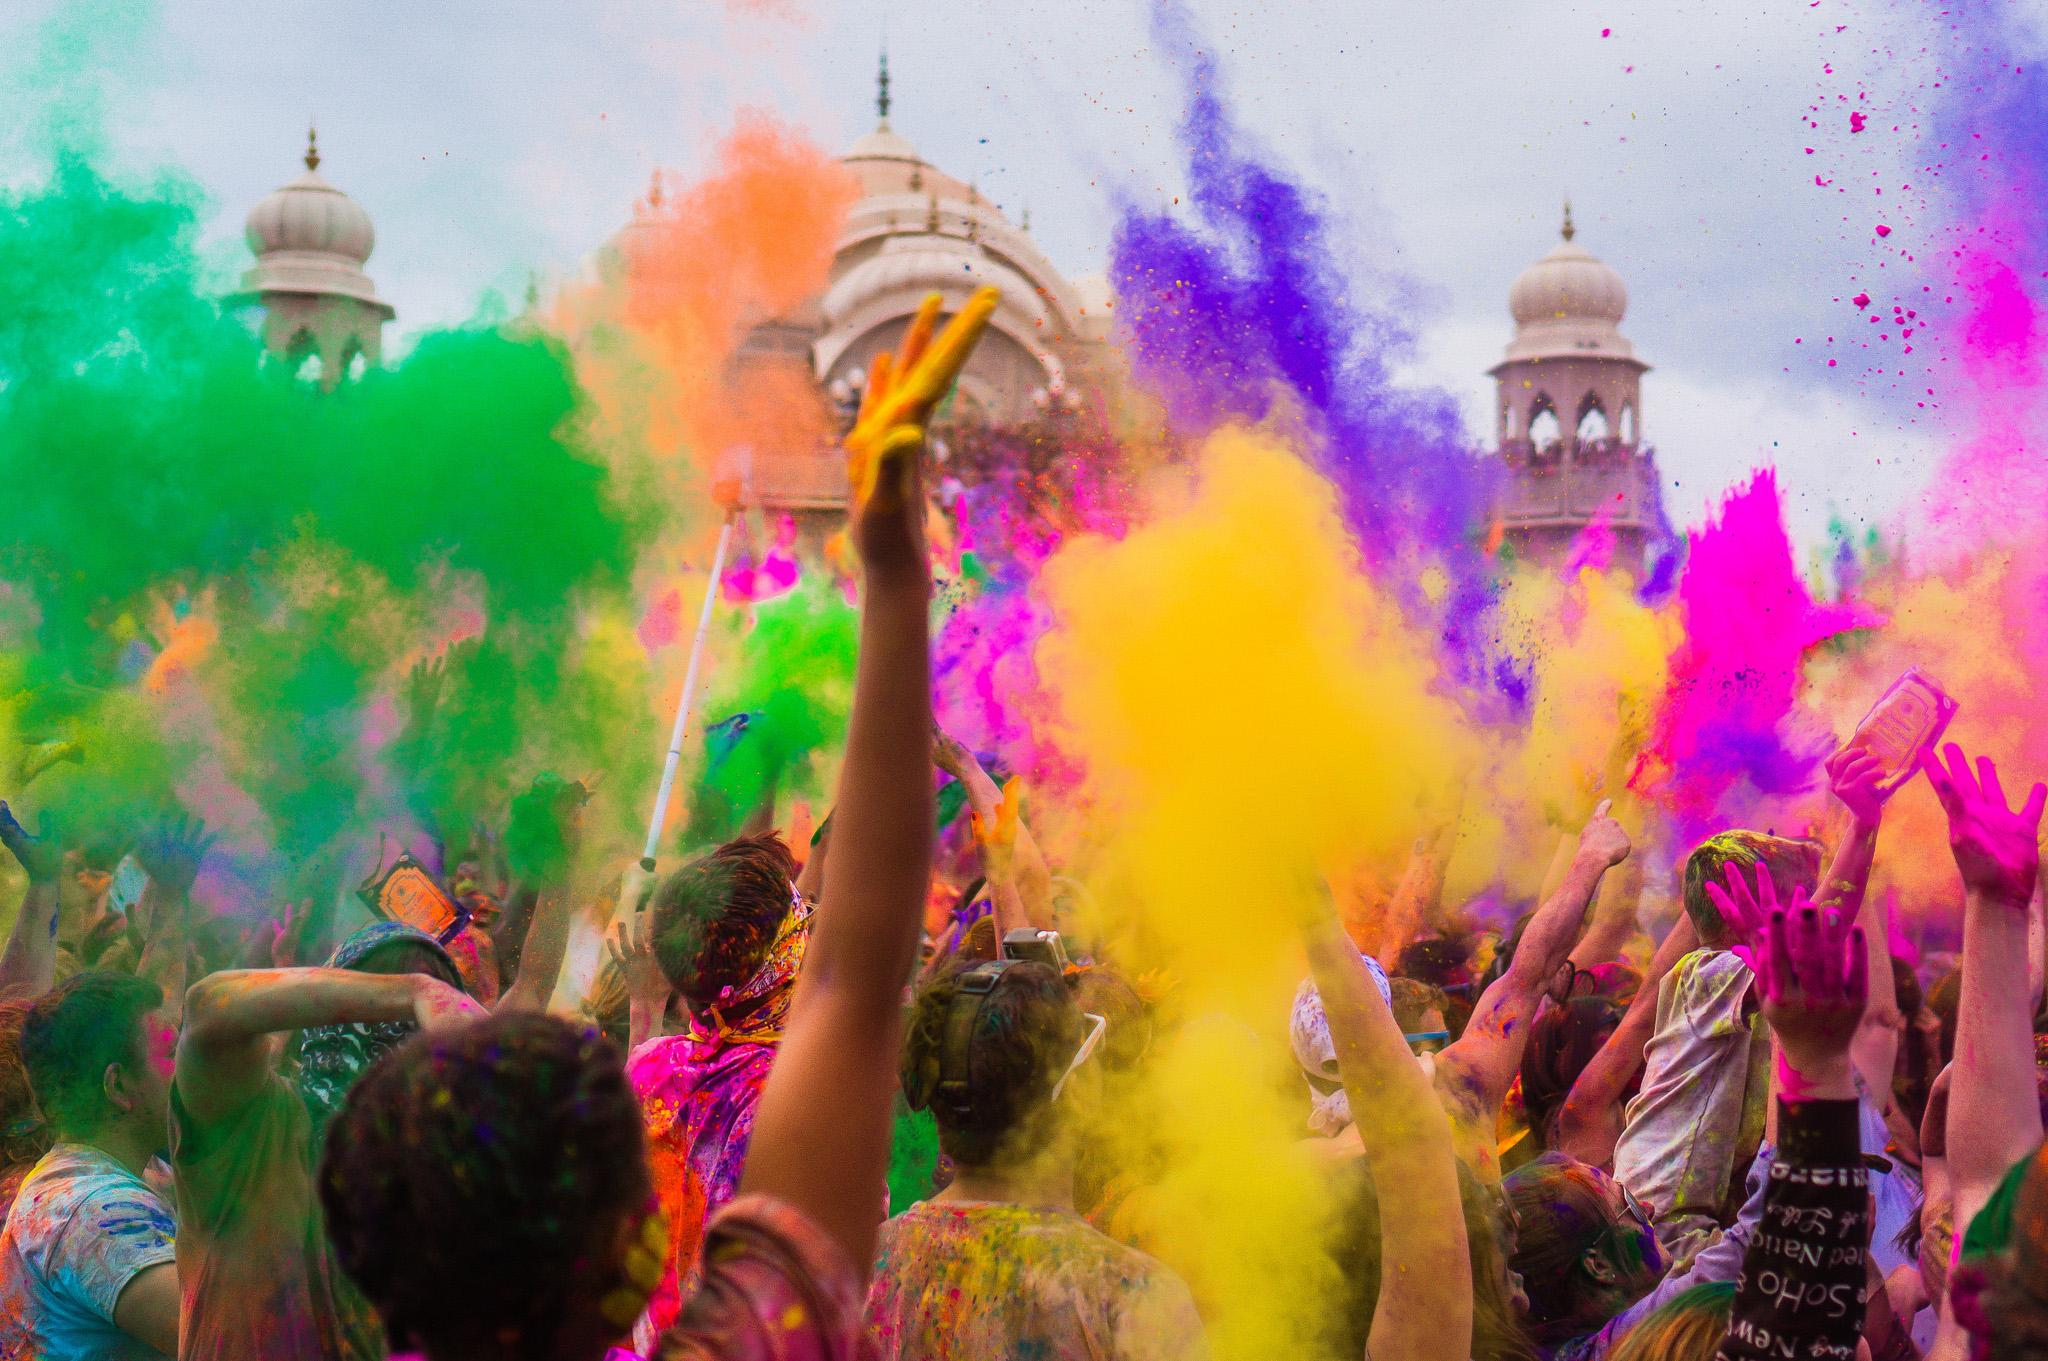 Holi is often associated with the colored powders that coat its participants (Steven Gerner / Flickr)